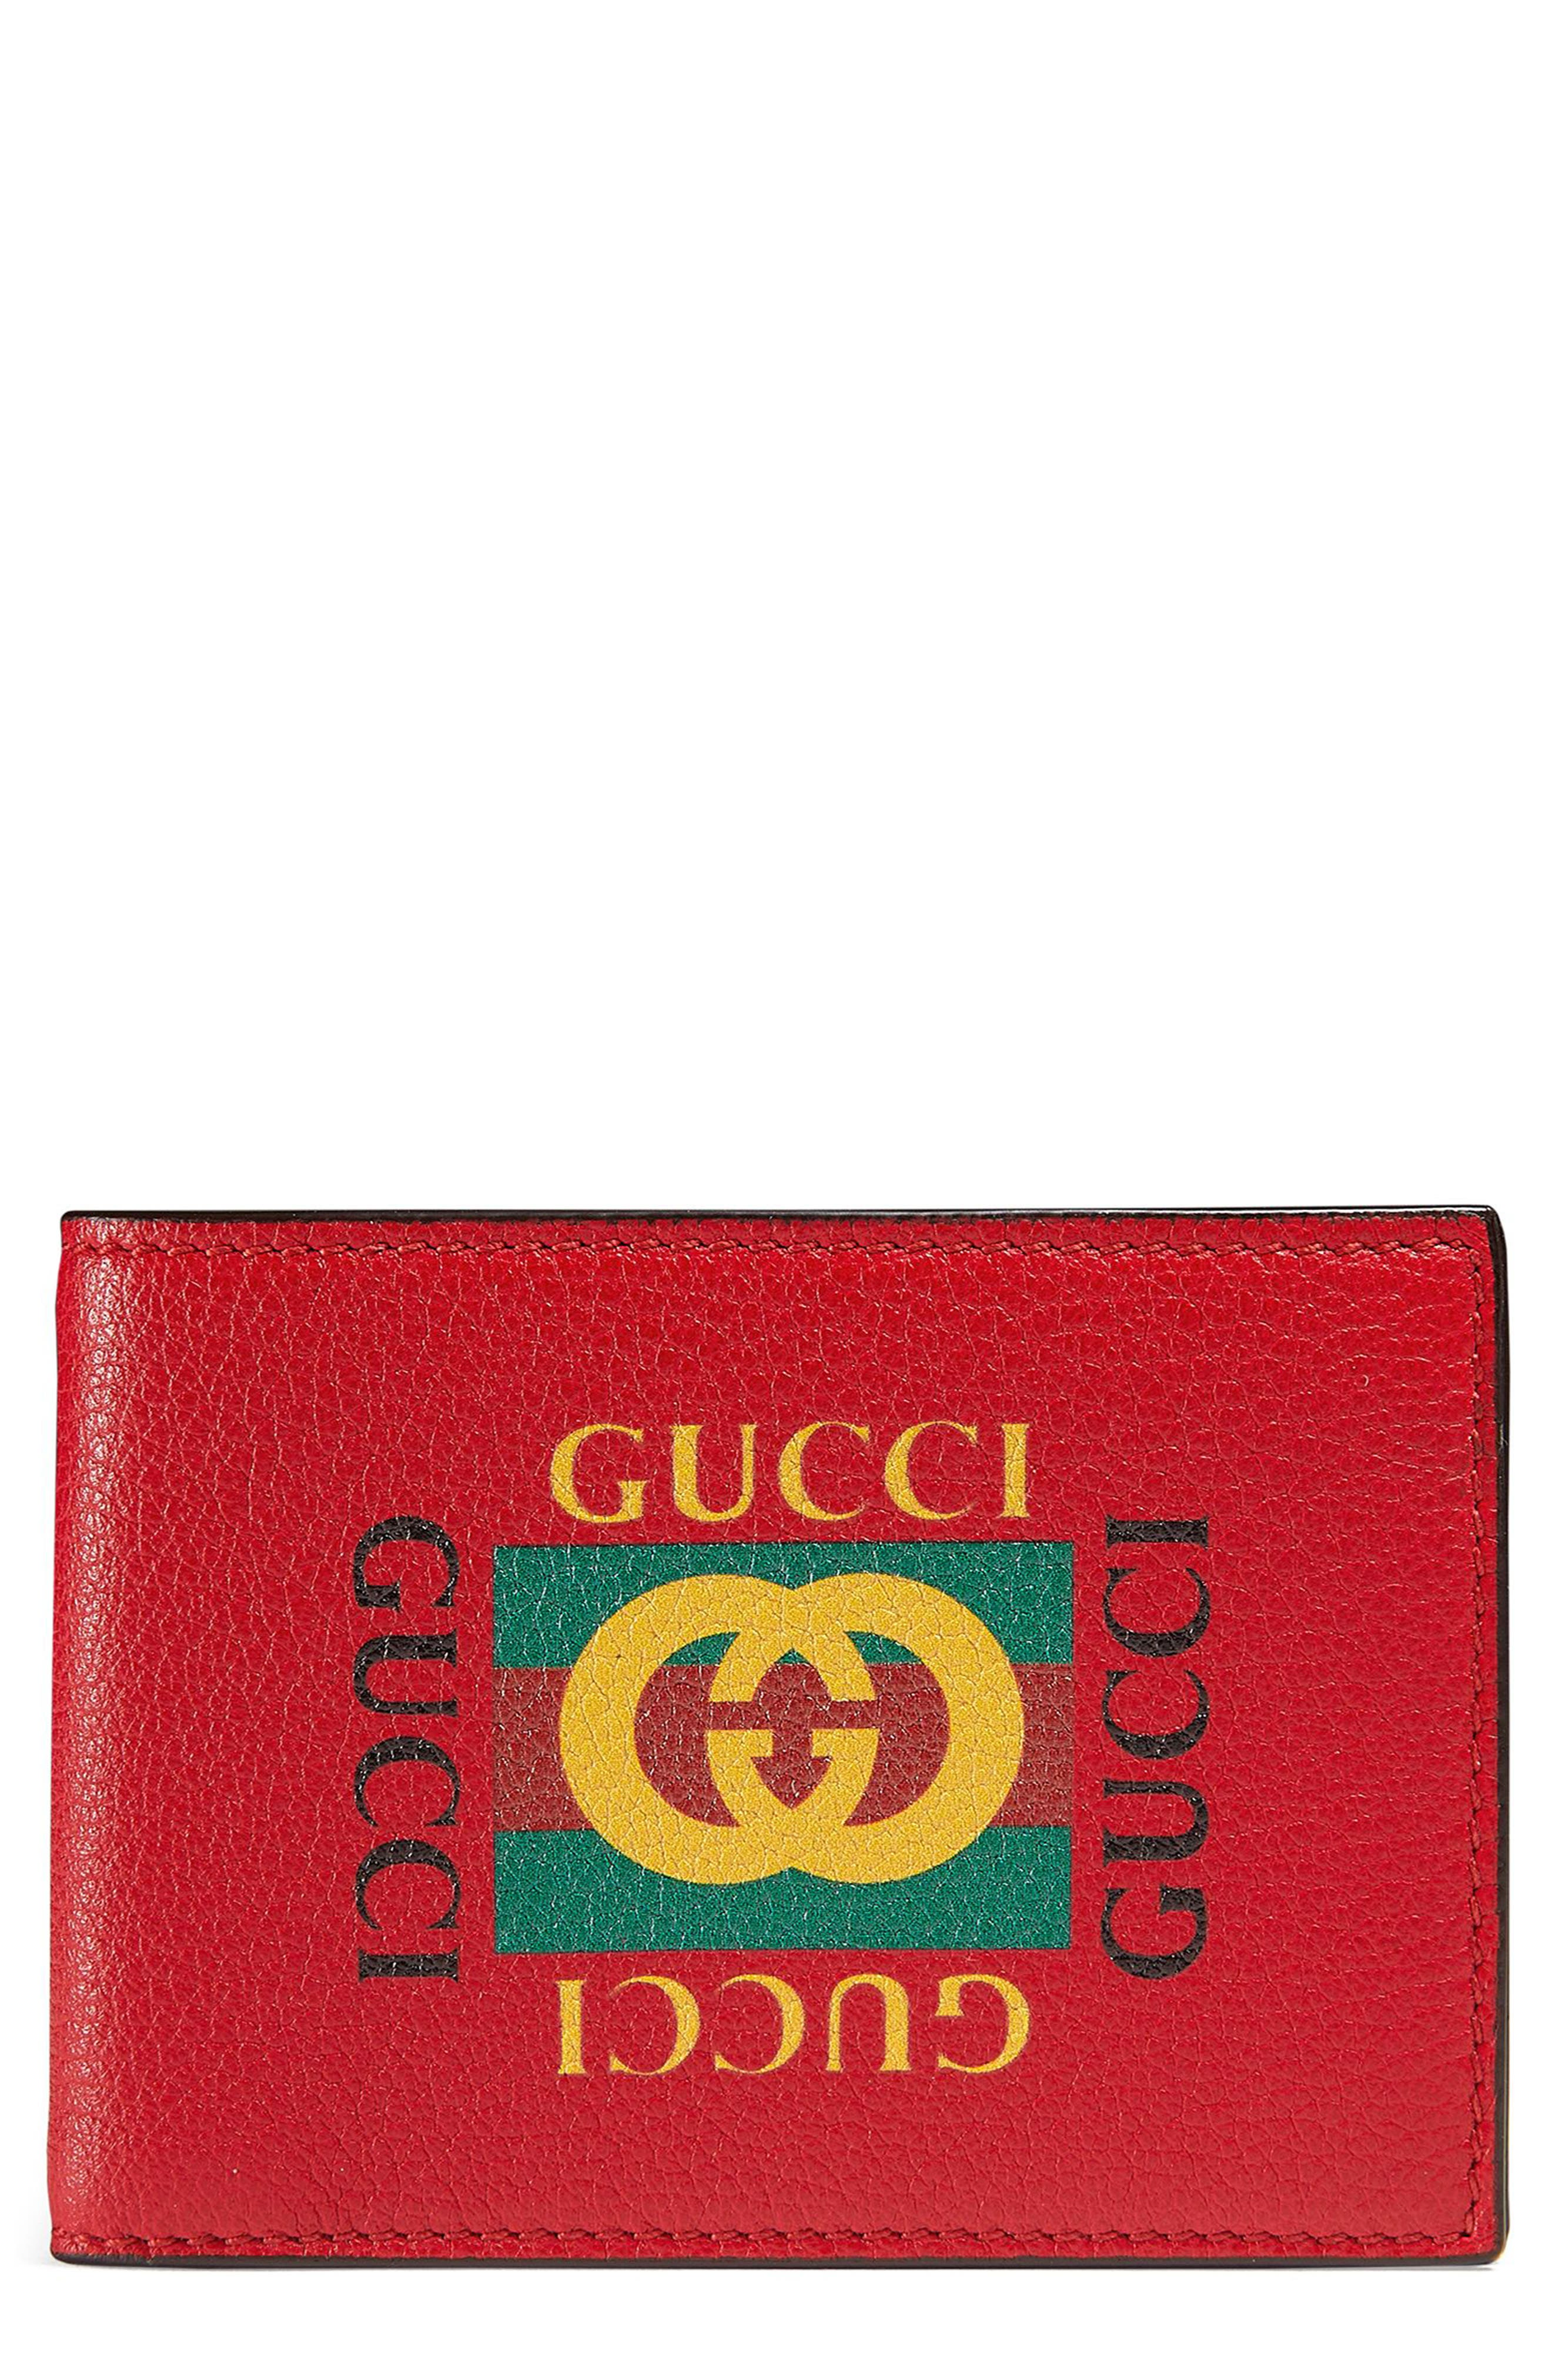 Gucci Mens Wallets Shoes Accessories Nordstrom